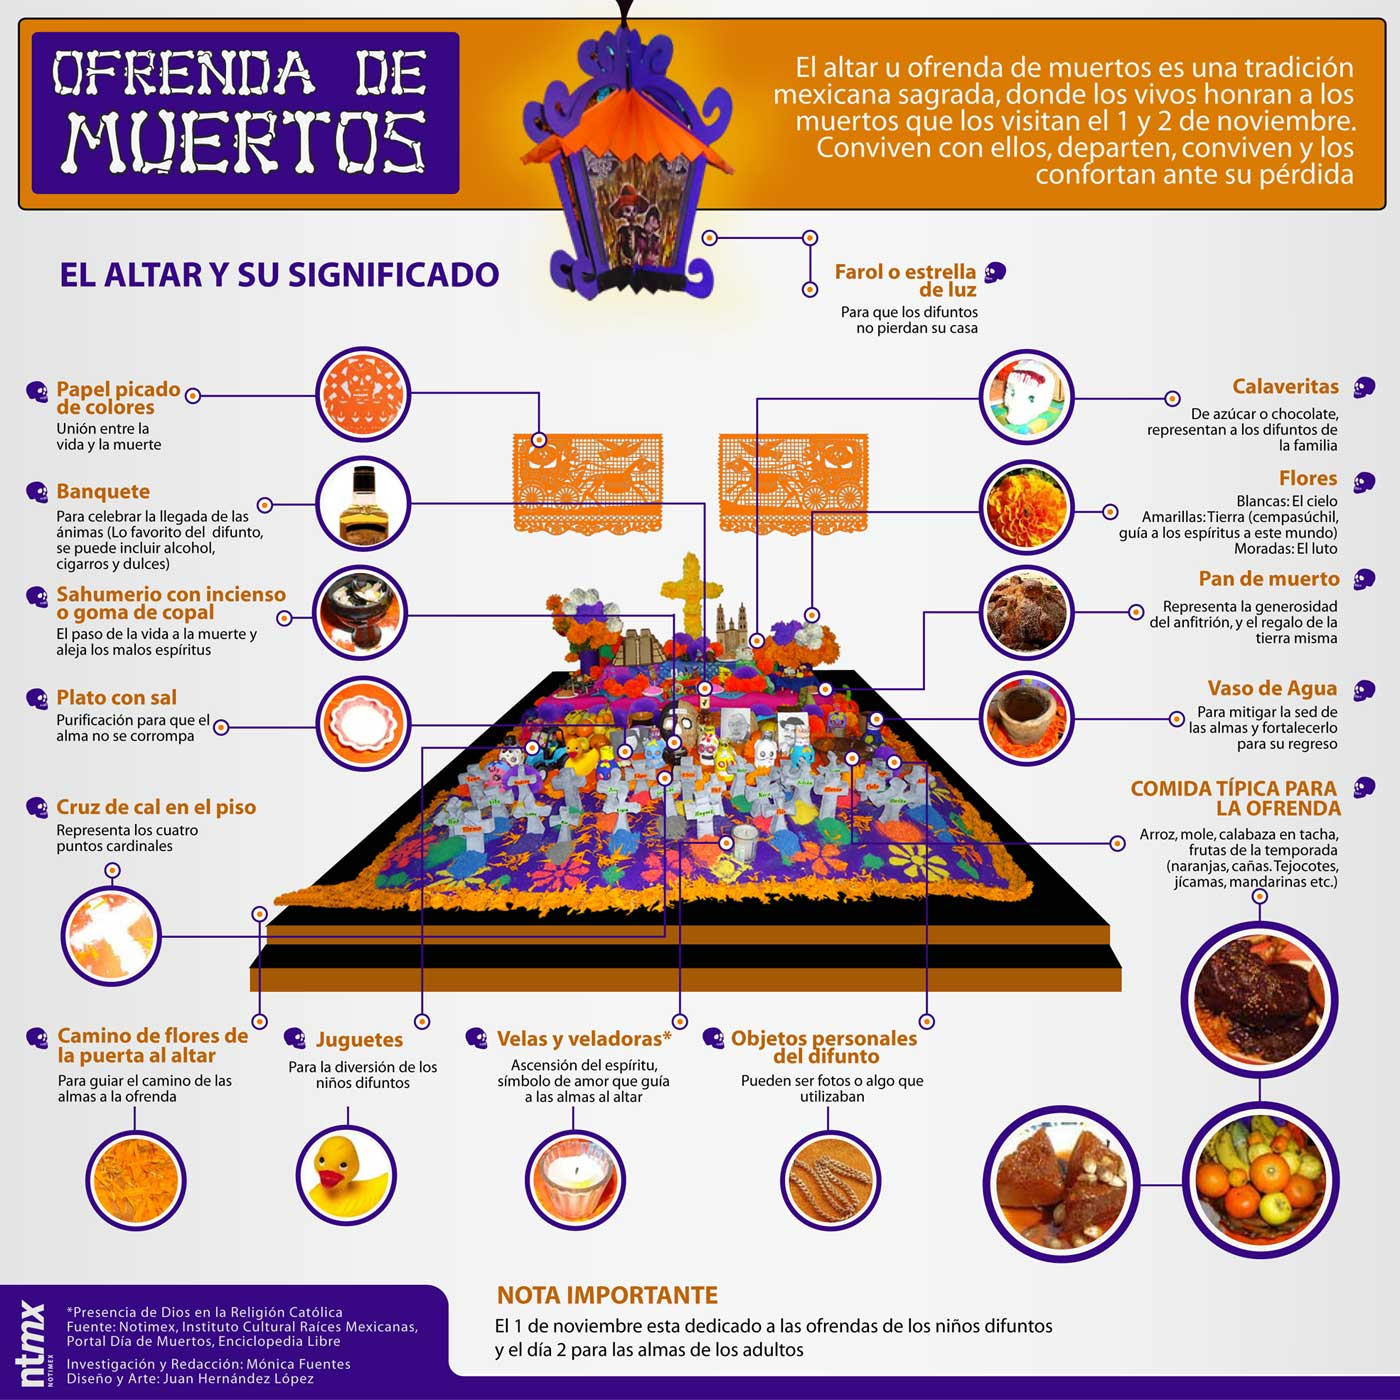 learning to teach also teaching to learn: halloween vs. ofrenda de